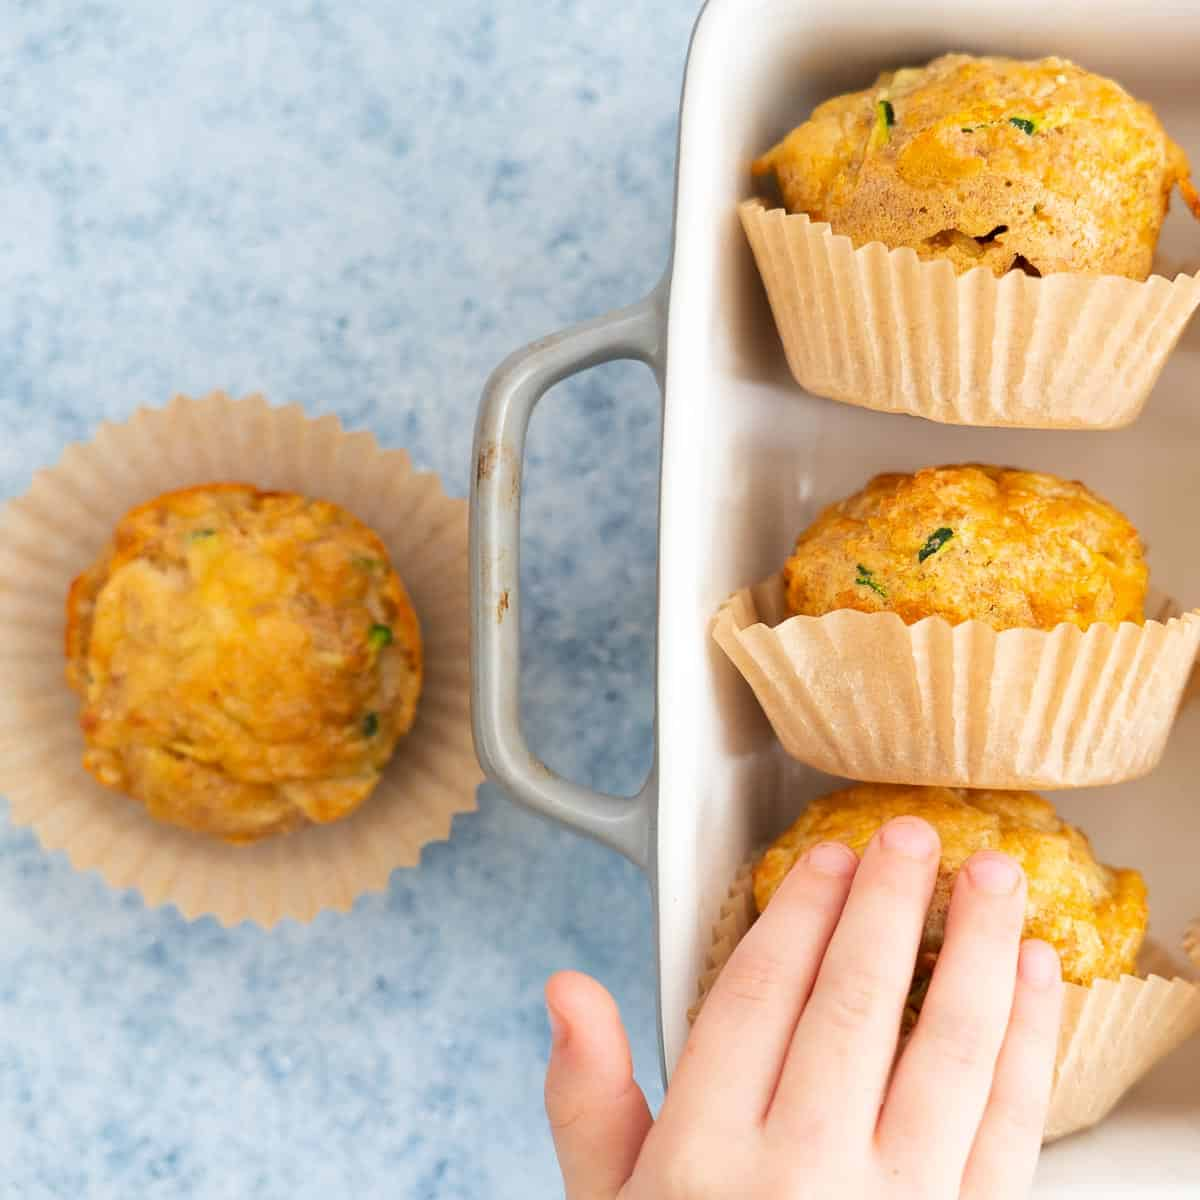 A child's hand reaching for 1 of 4 vegetable muffins in muffin cases